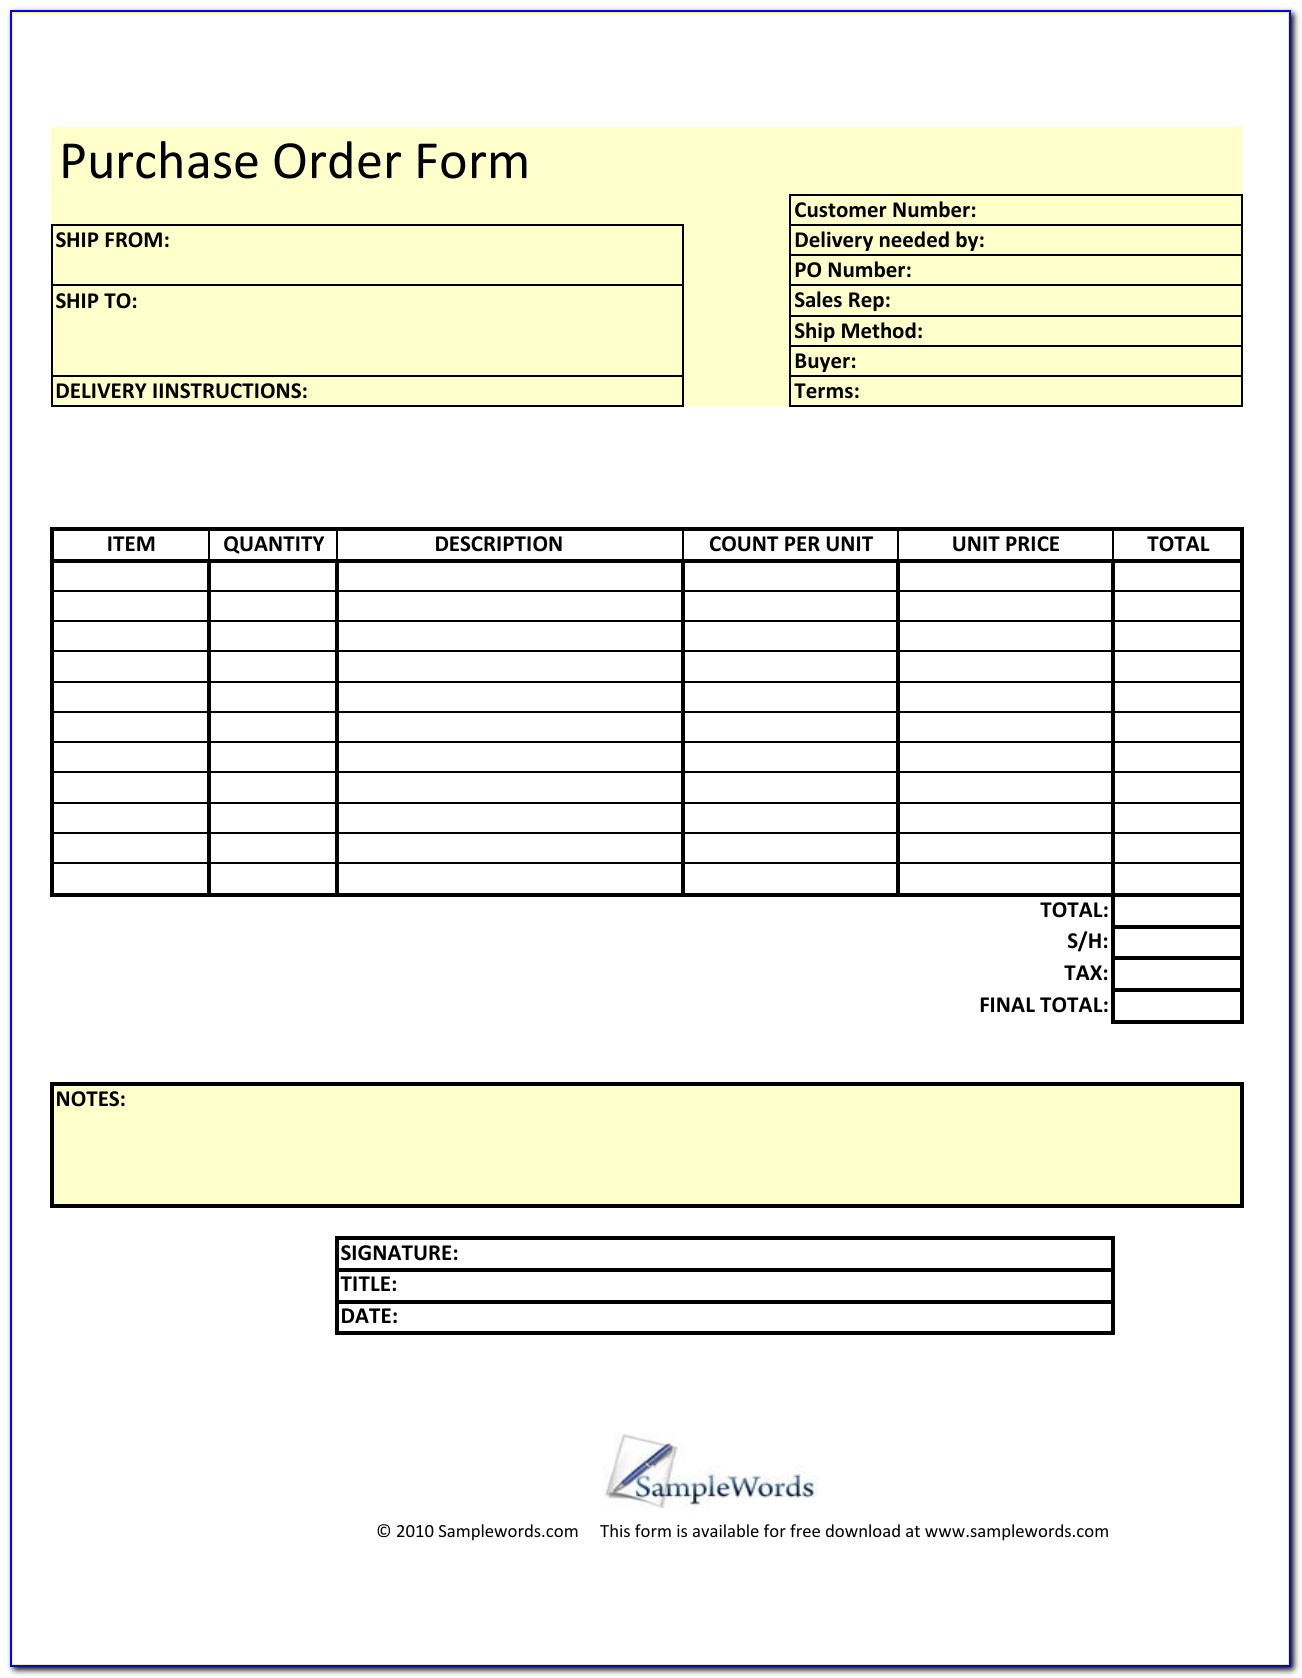 Sample Blank Purchase Order Form